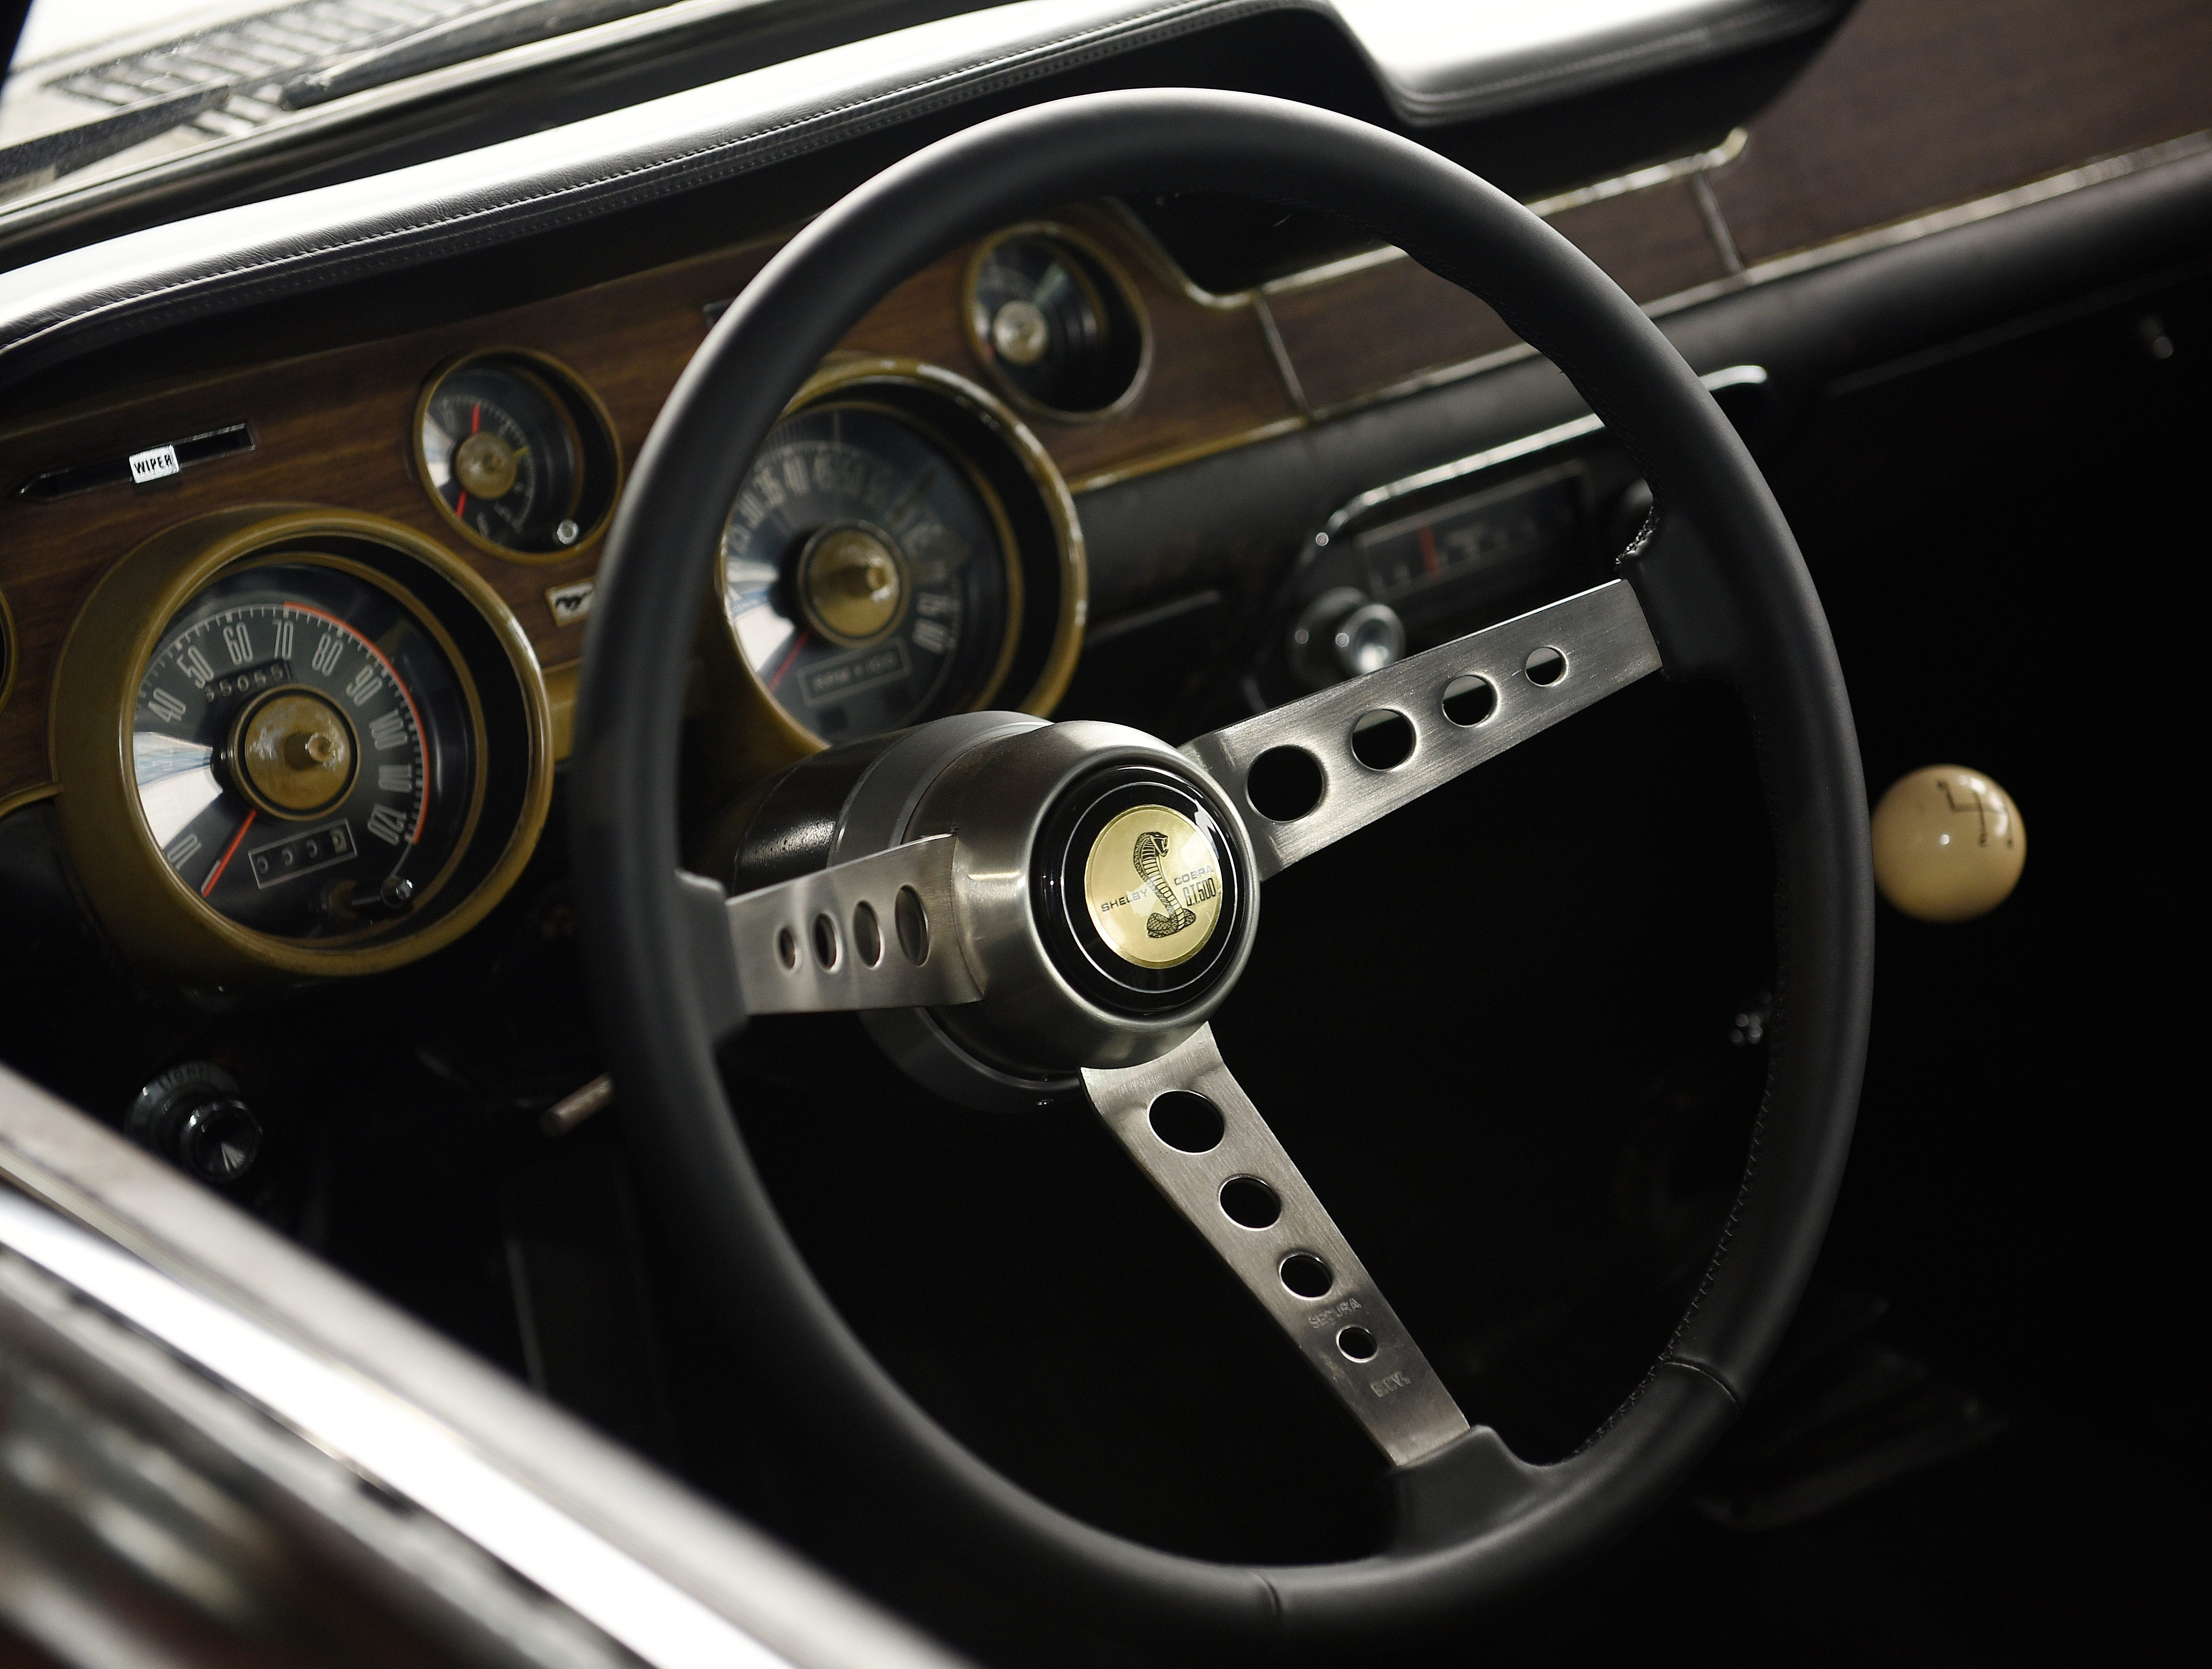 The dash and steering wheel of the original 1968 Mustang GT Fastback